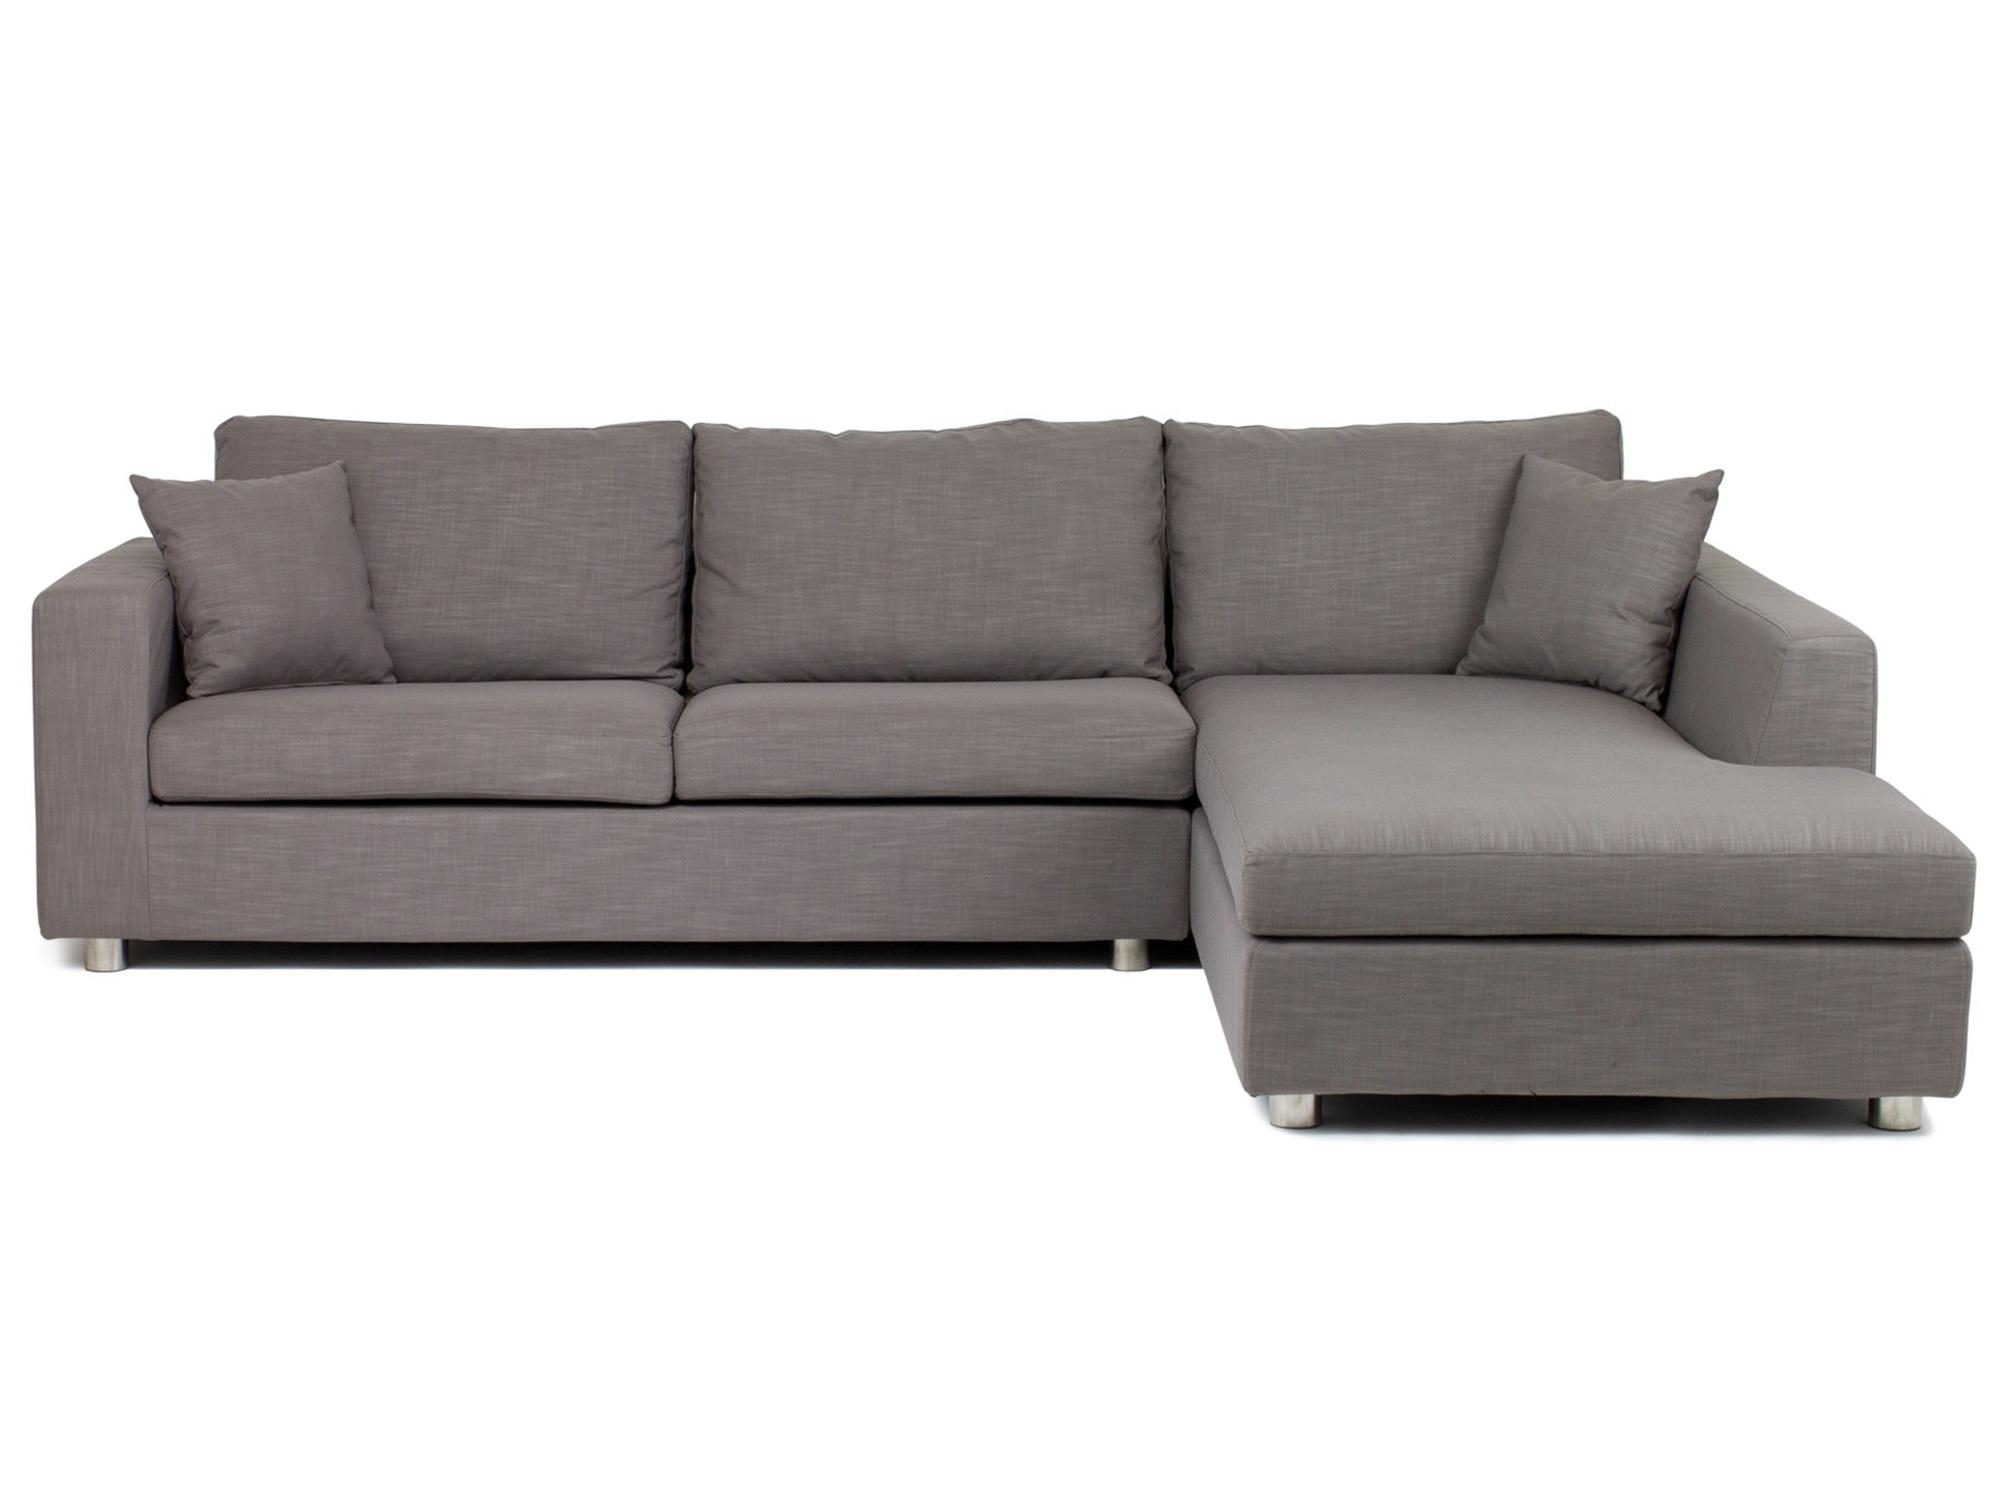 Sofas: Chaise Sofa Bed | Corner Lounge With Sofa Bed & Chaise Regarding Chaise Sofas (Image 19 of 20)